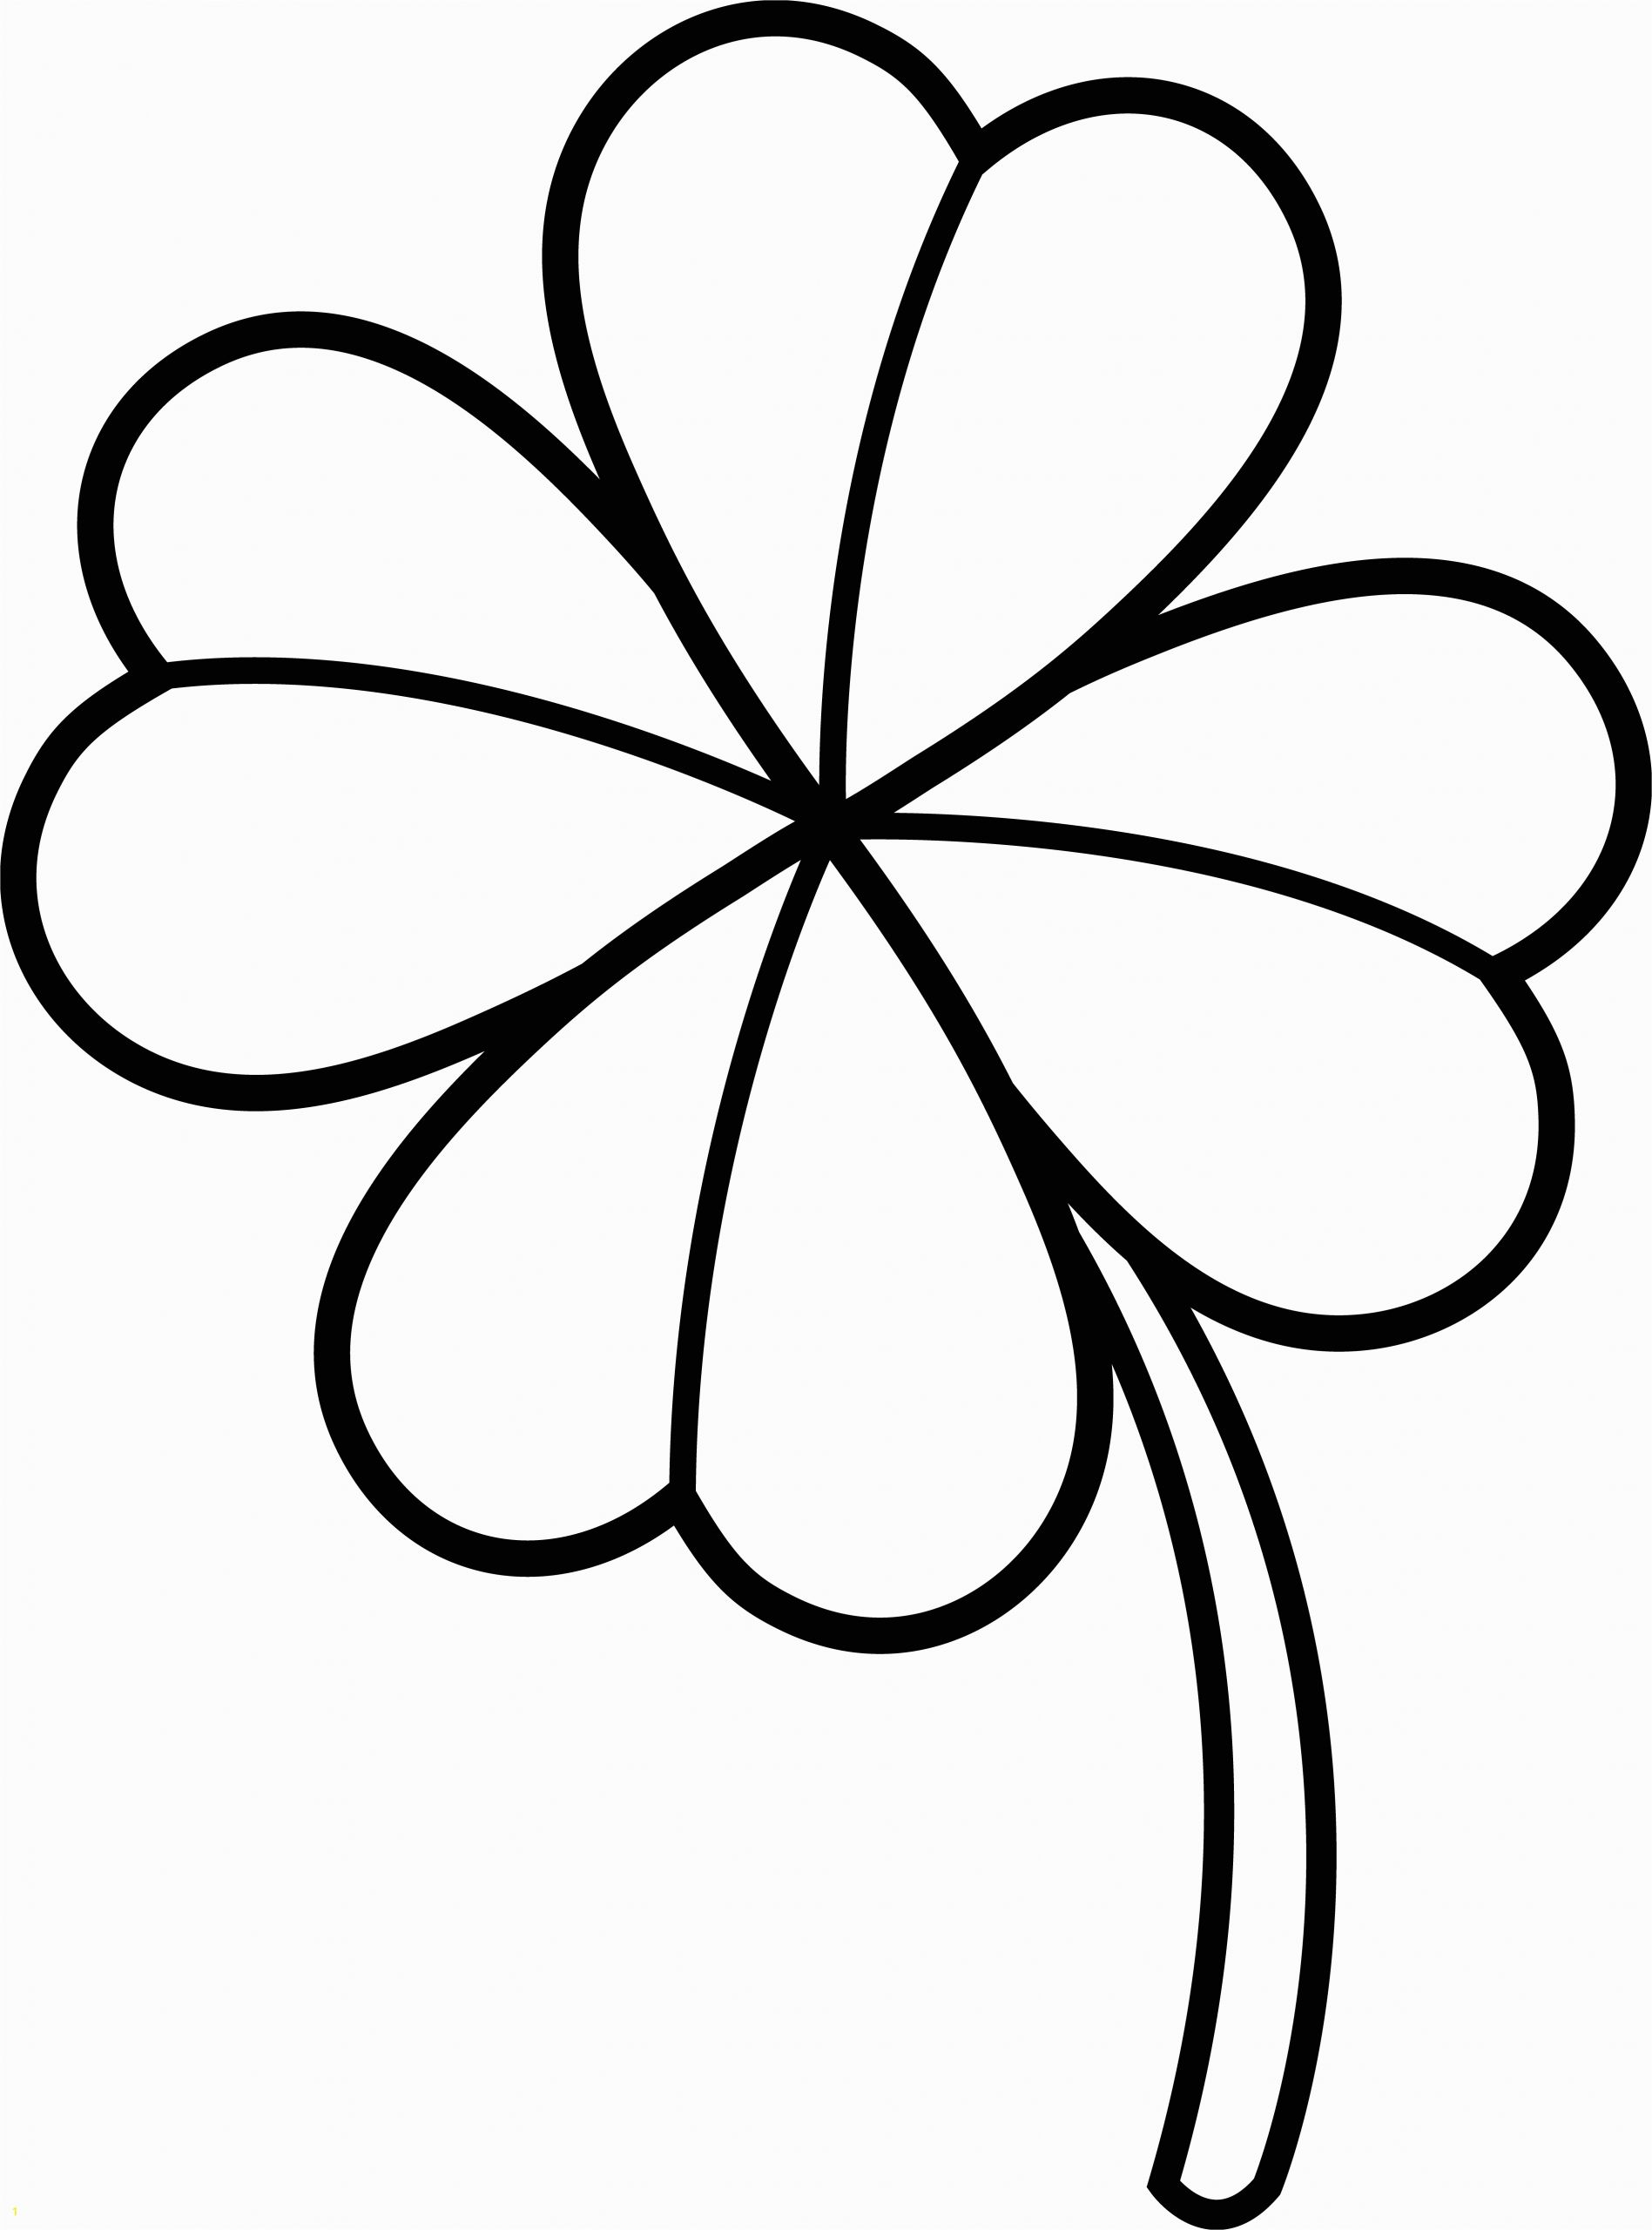 Four Leaf Clover Coloring Pages Printable Four Leaf Clover Coloring Pages Best Coloring Pages for Kids